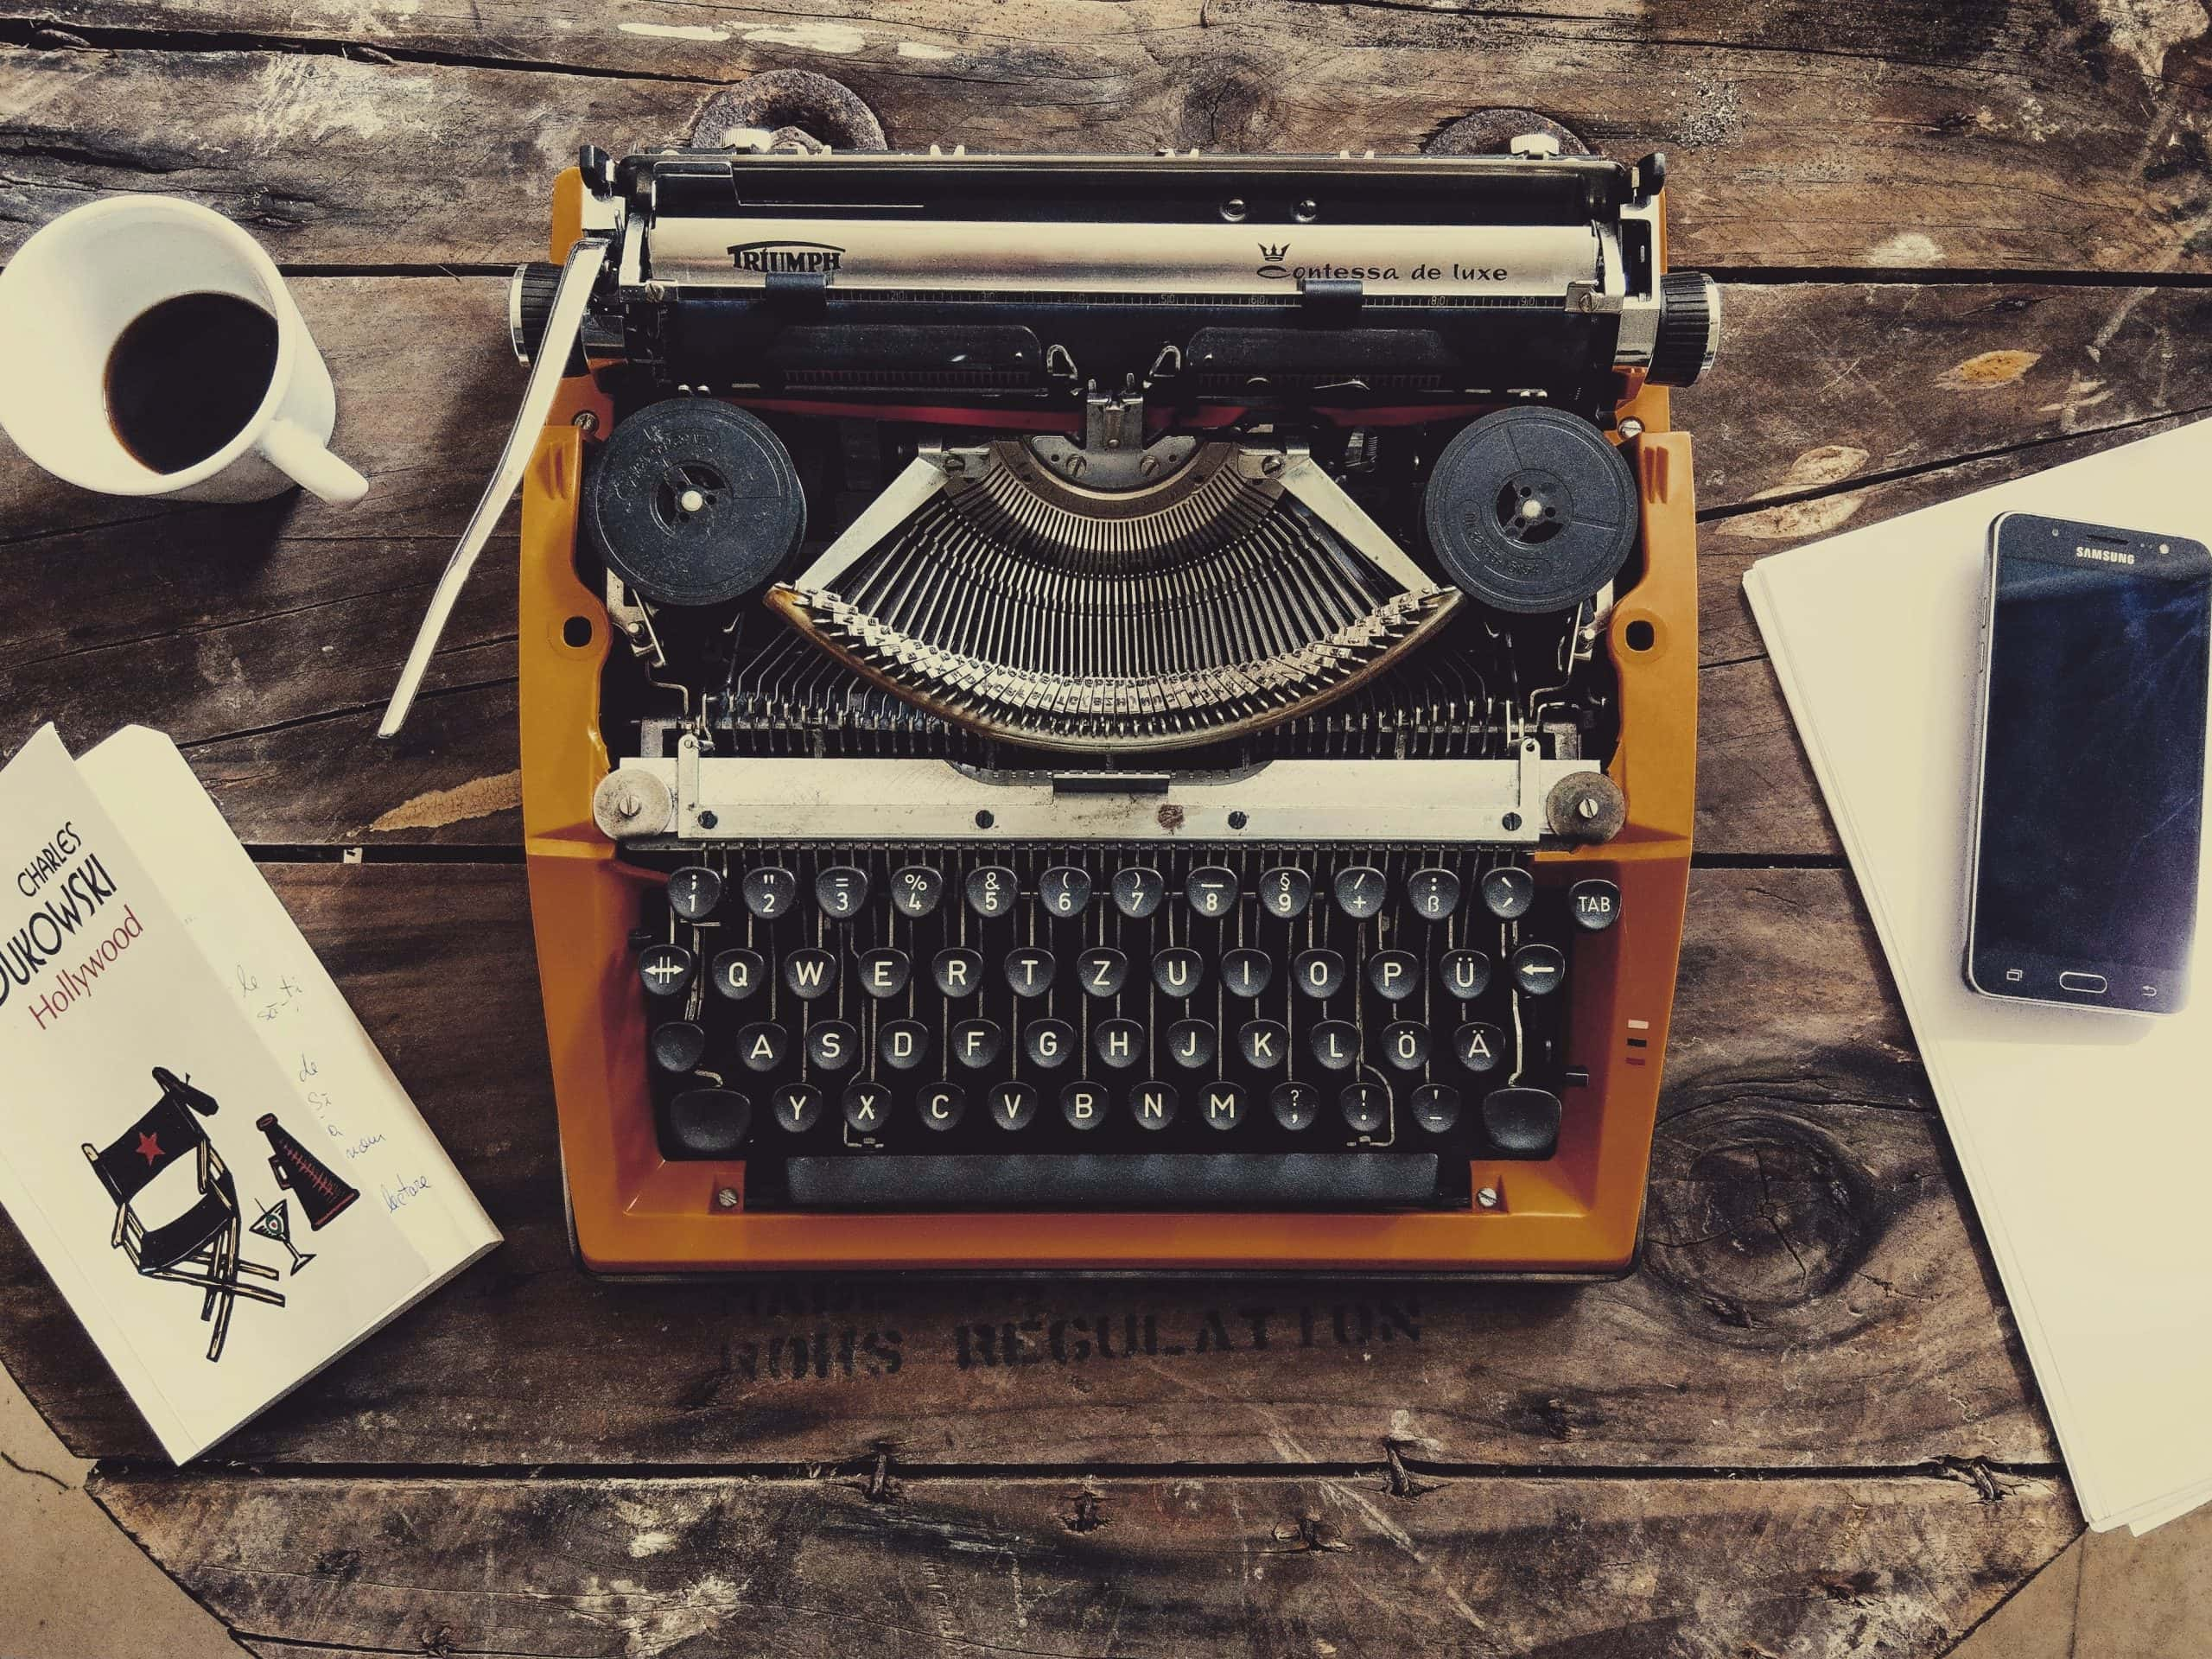 The Best Filmmaking Blogs in 2021 - An image of a typewriter and coffee